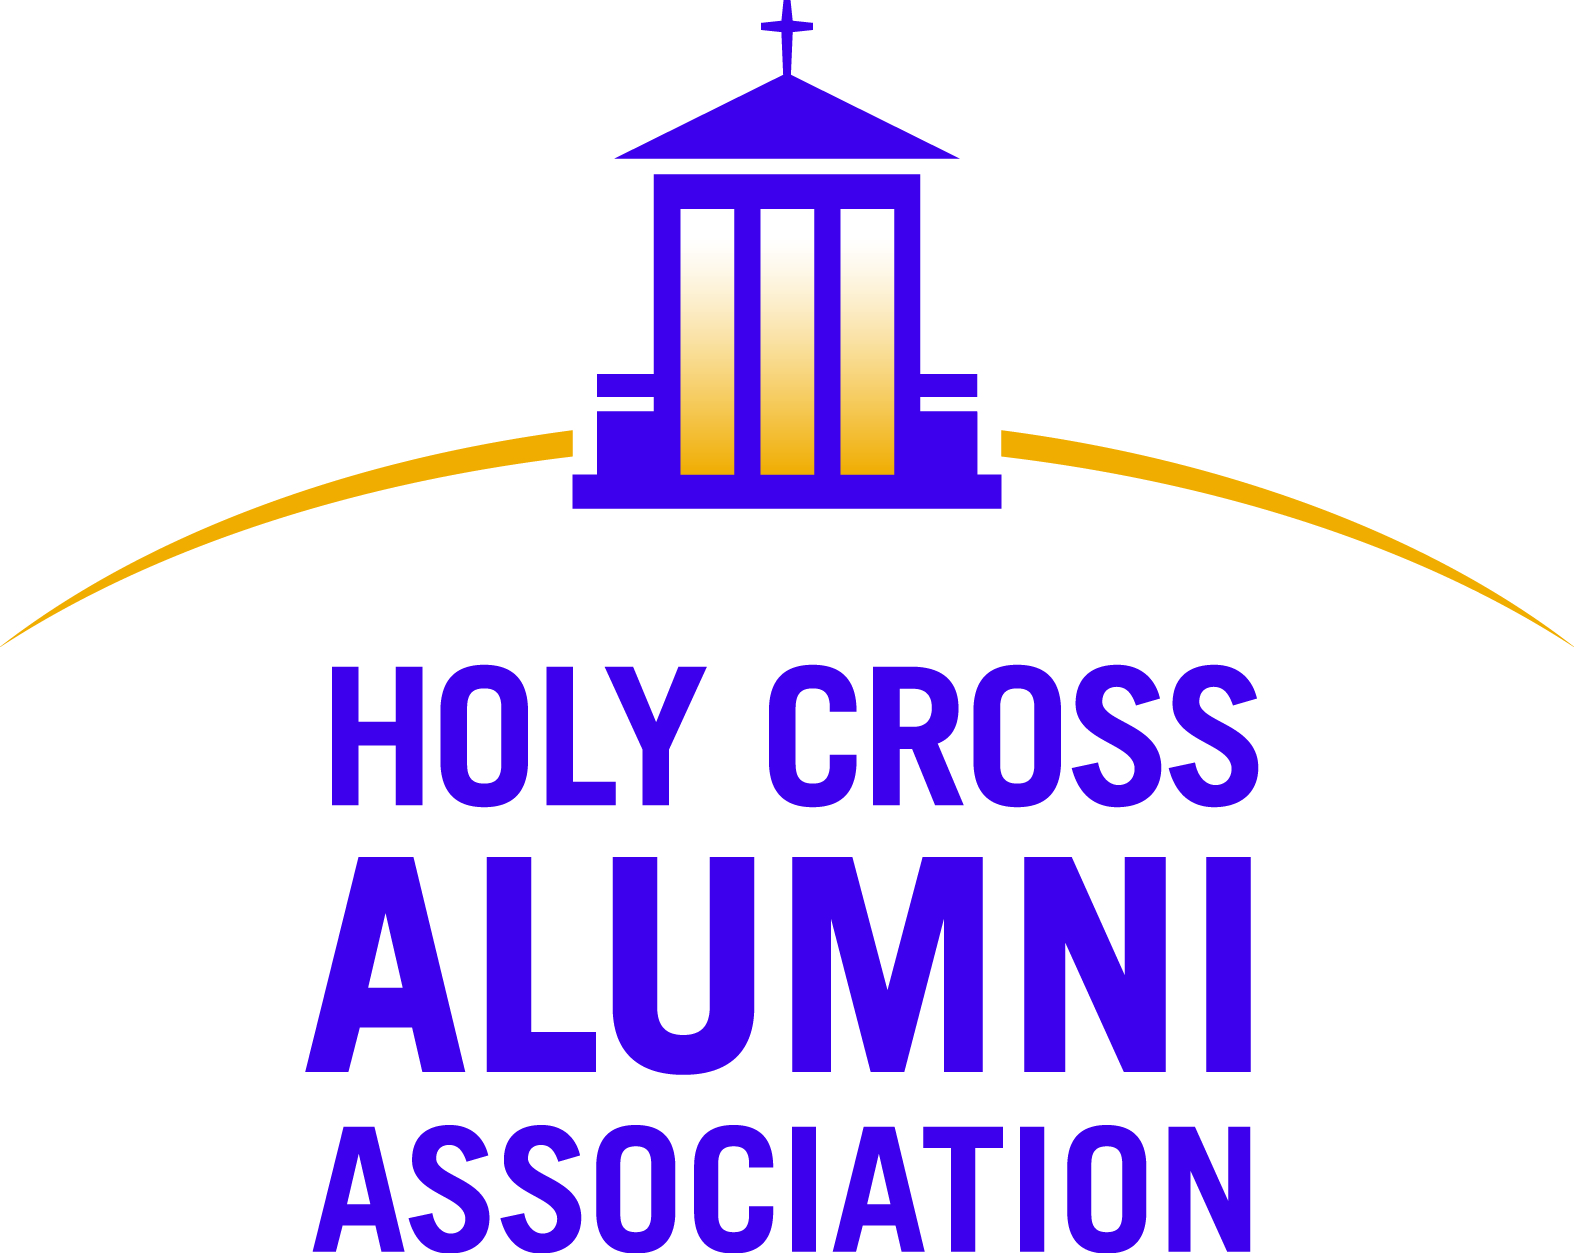 Holy Cross Alumni